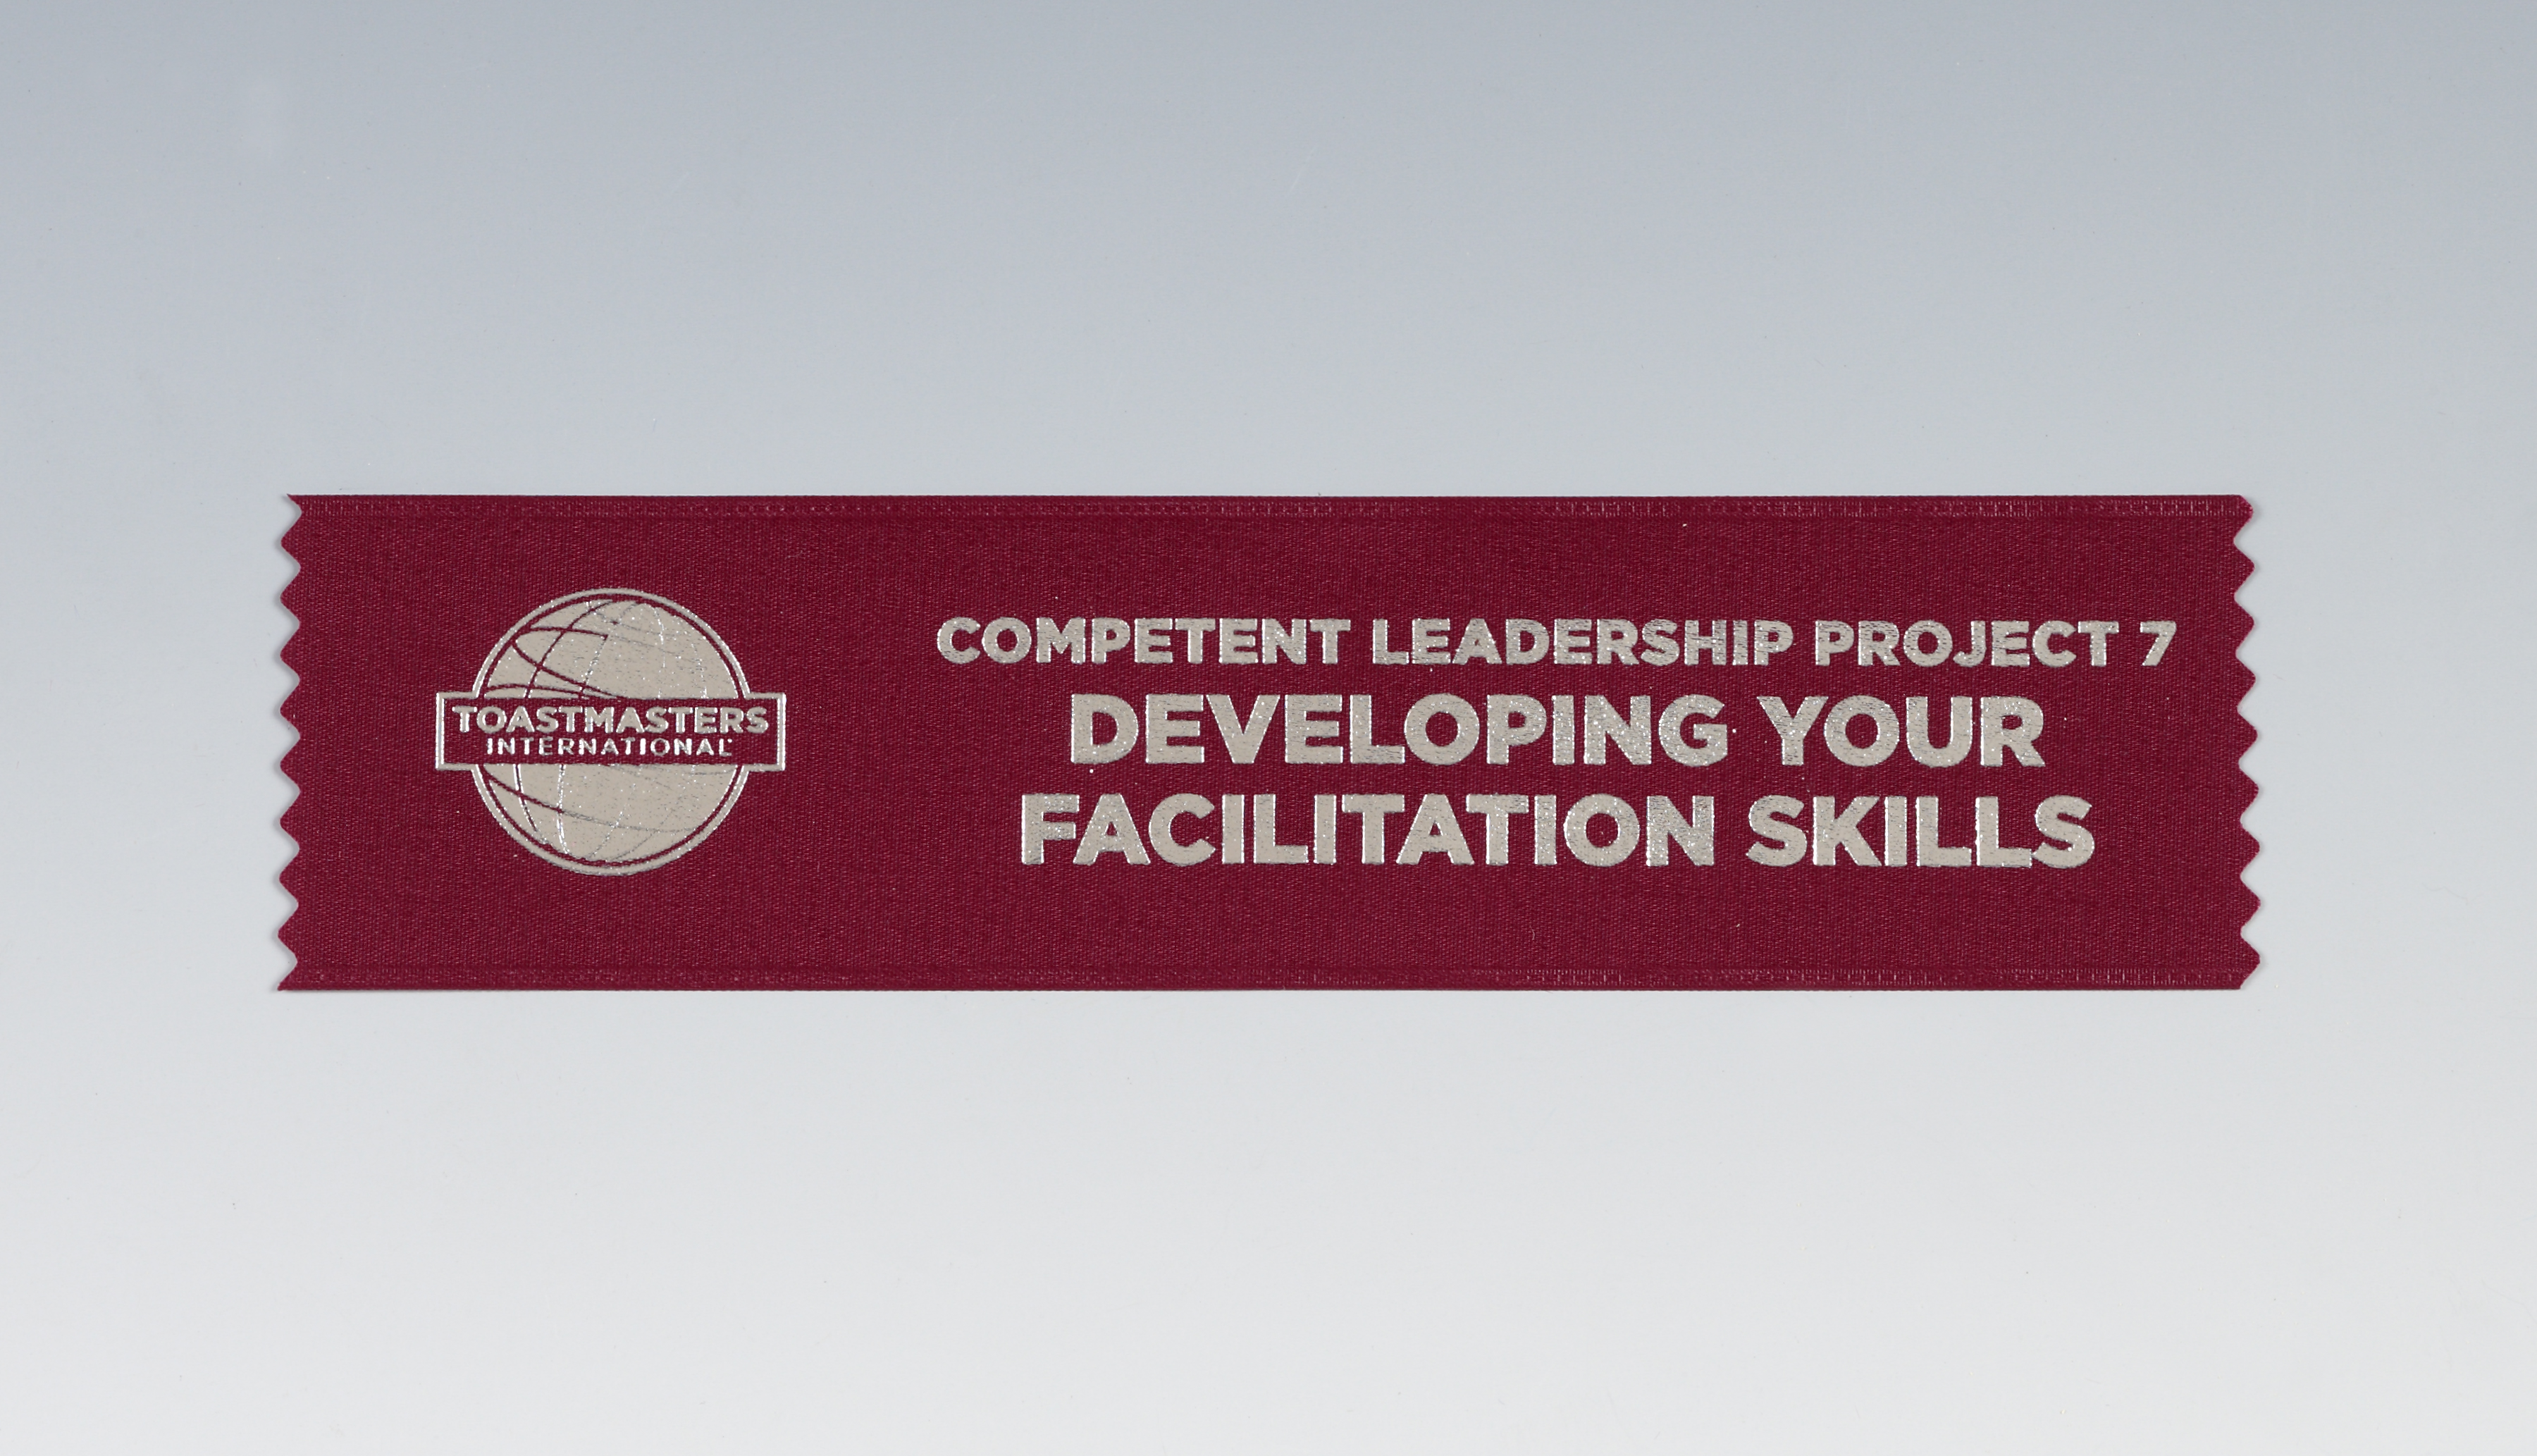 Developing Your Facilitation Skills